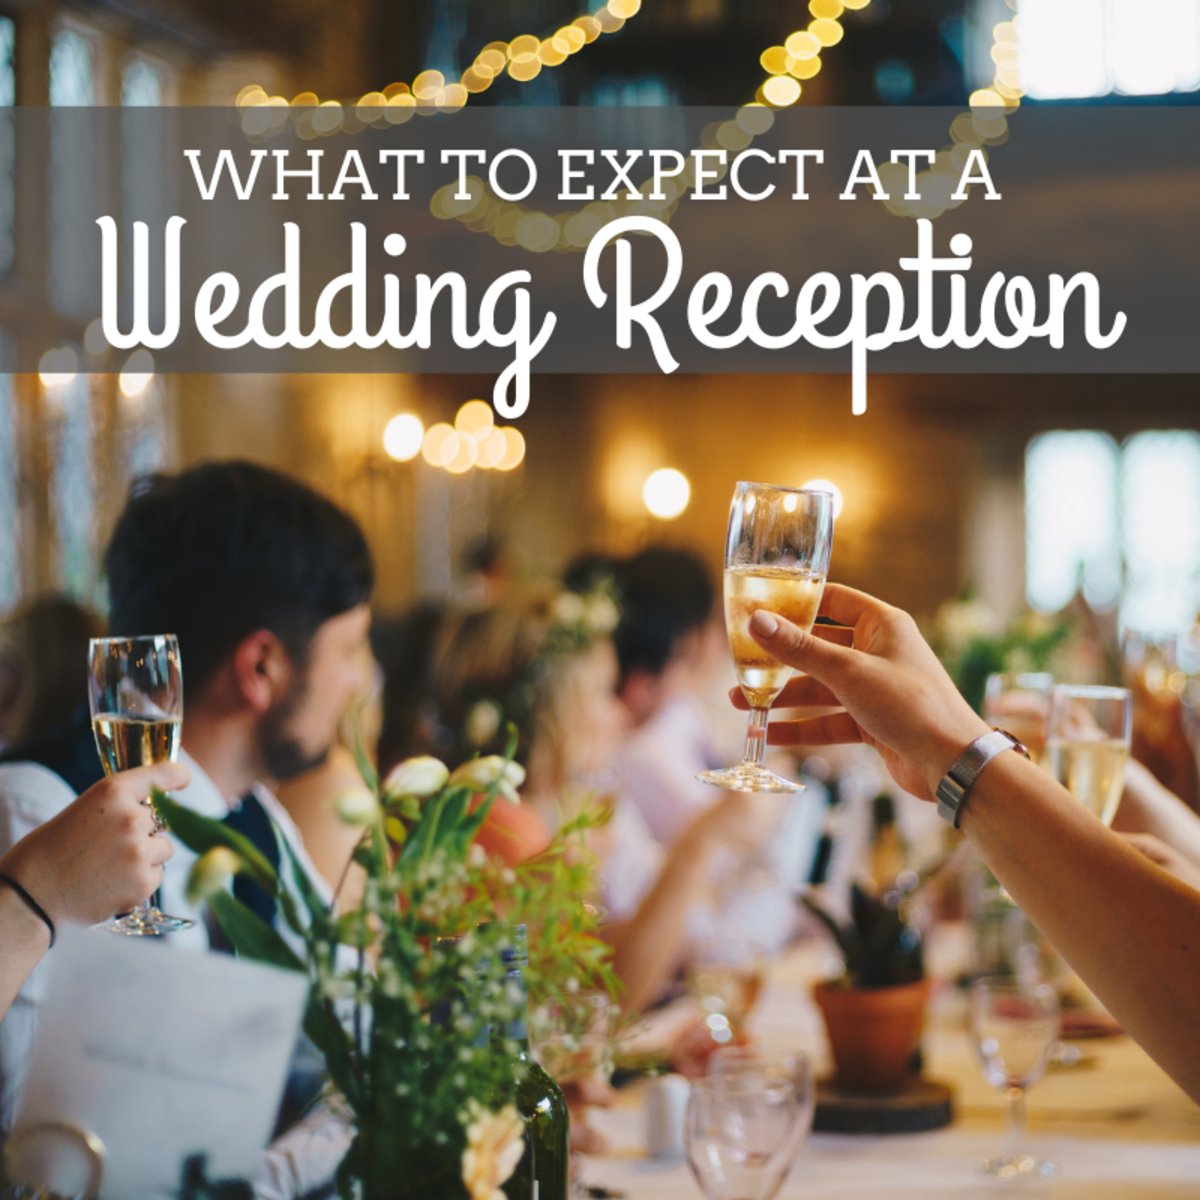 What Happens At A Traditional Wedding Reception?